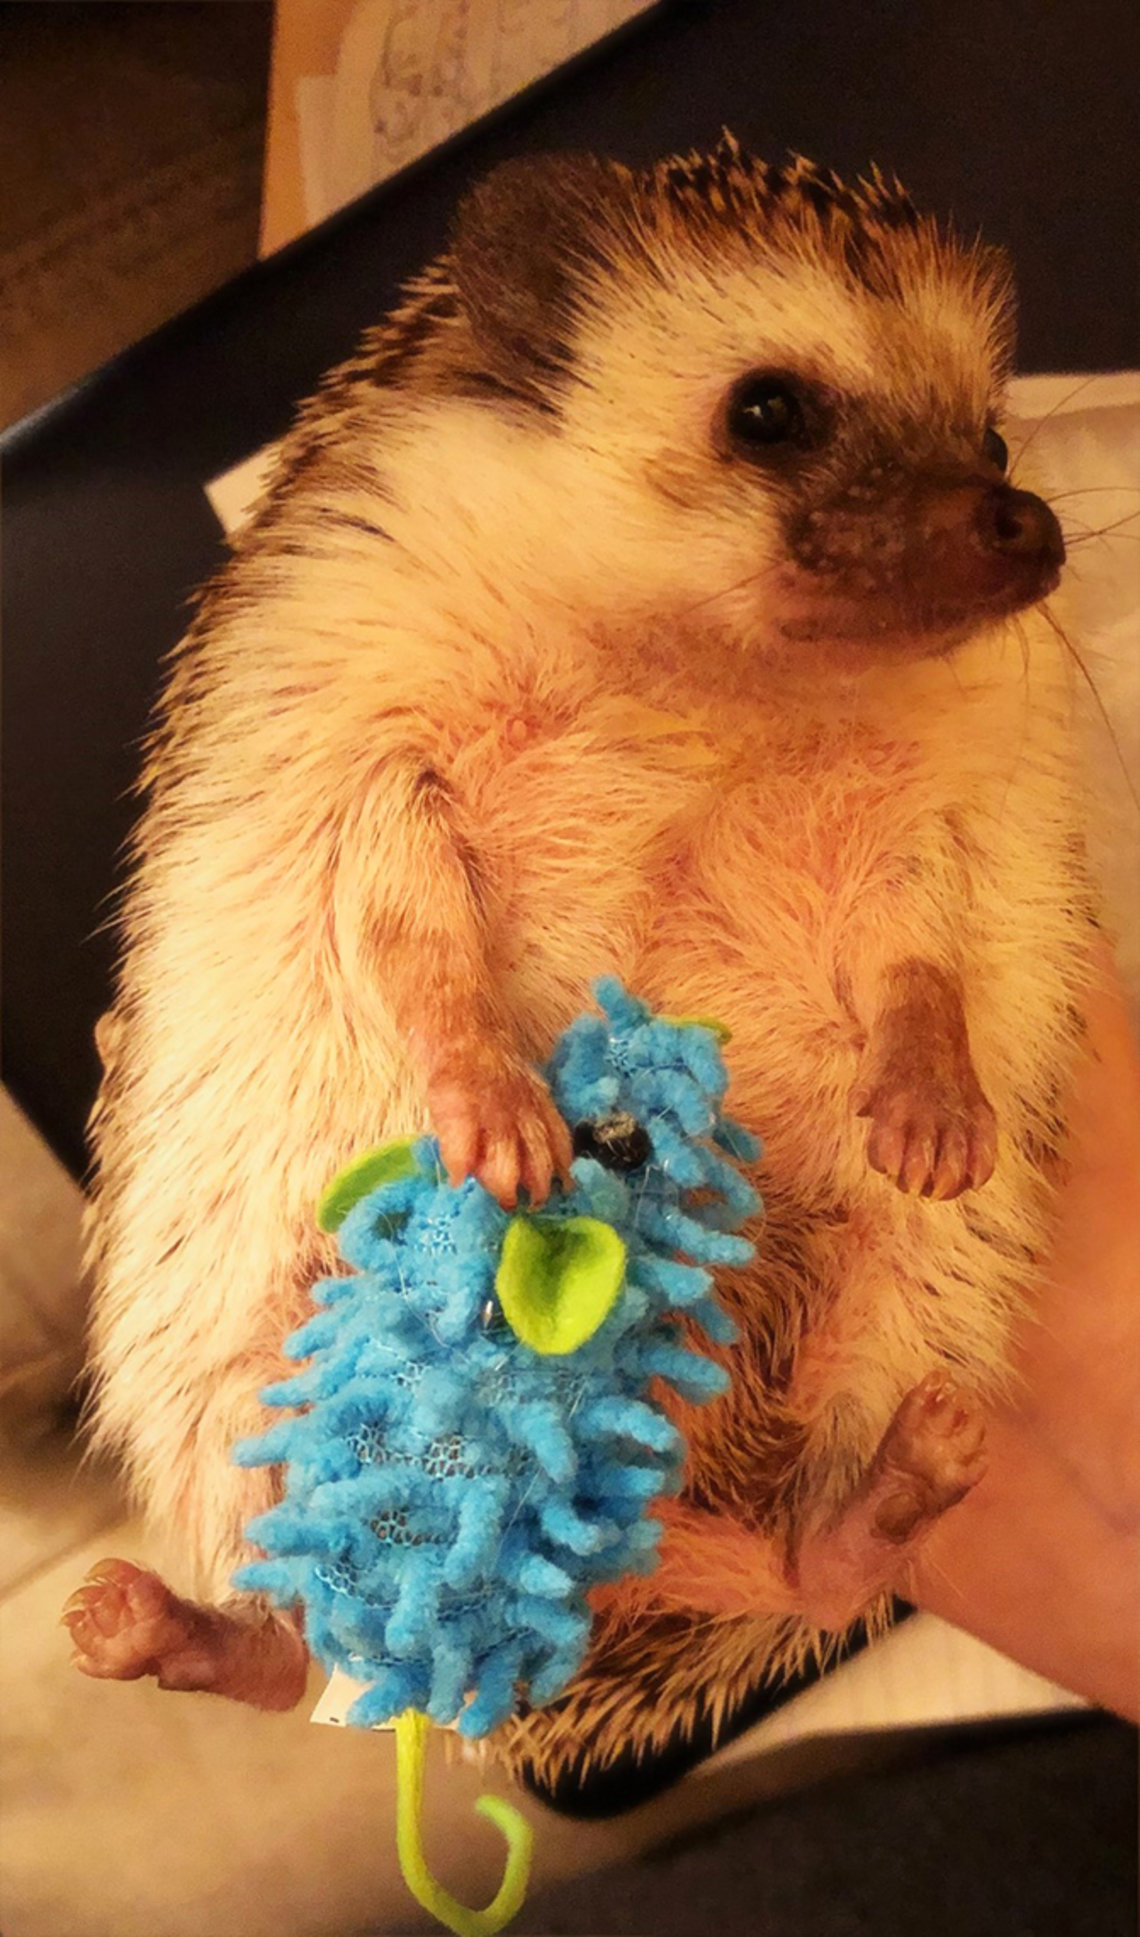 A hedgehog hugs a play mouse